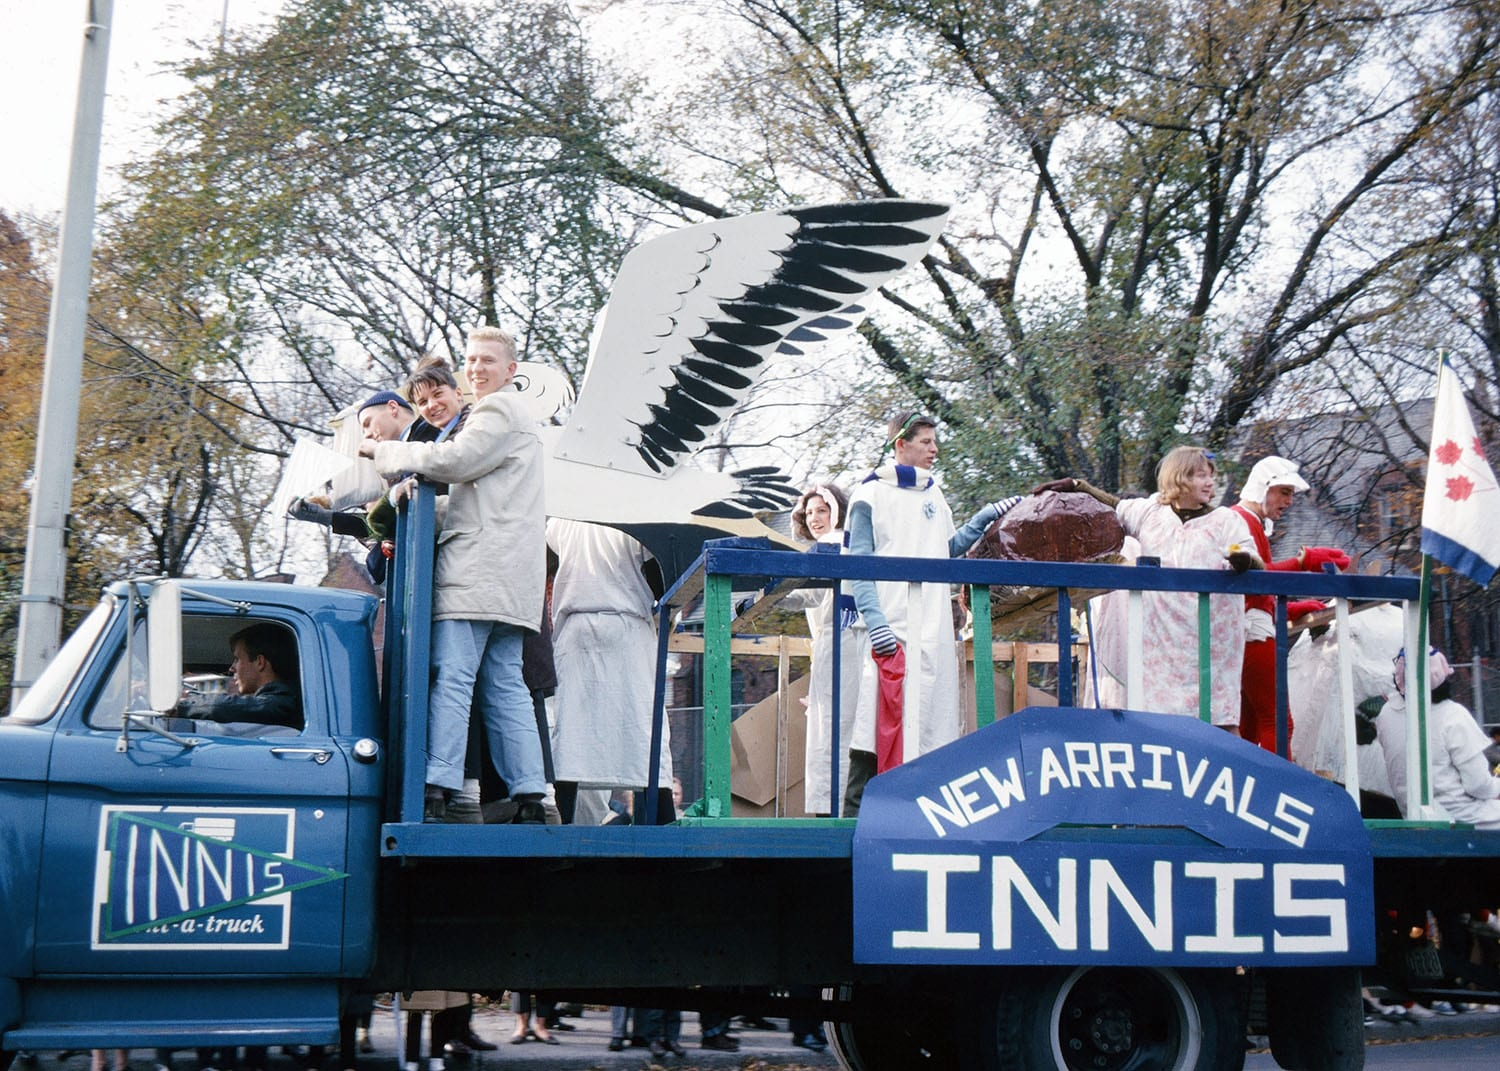 People dressed in costumes on the Innis Homecoming Float (1964)